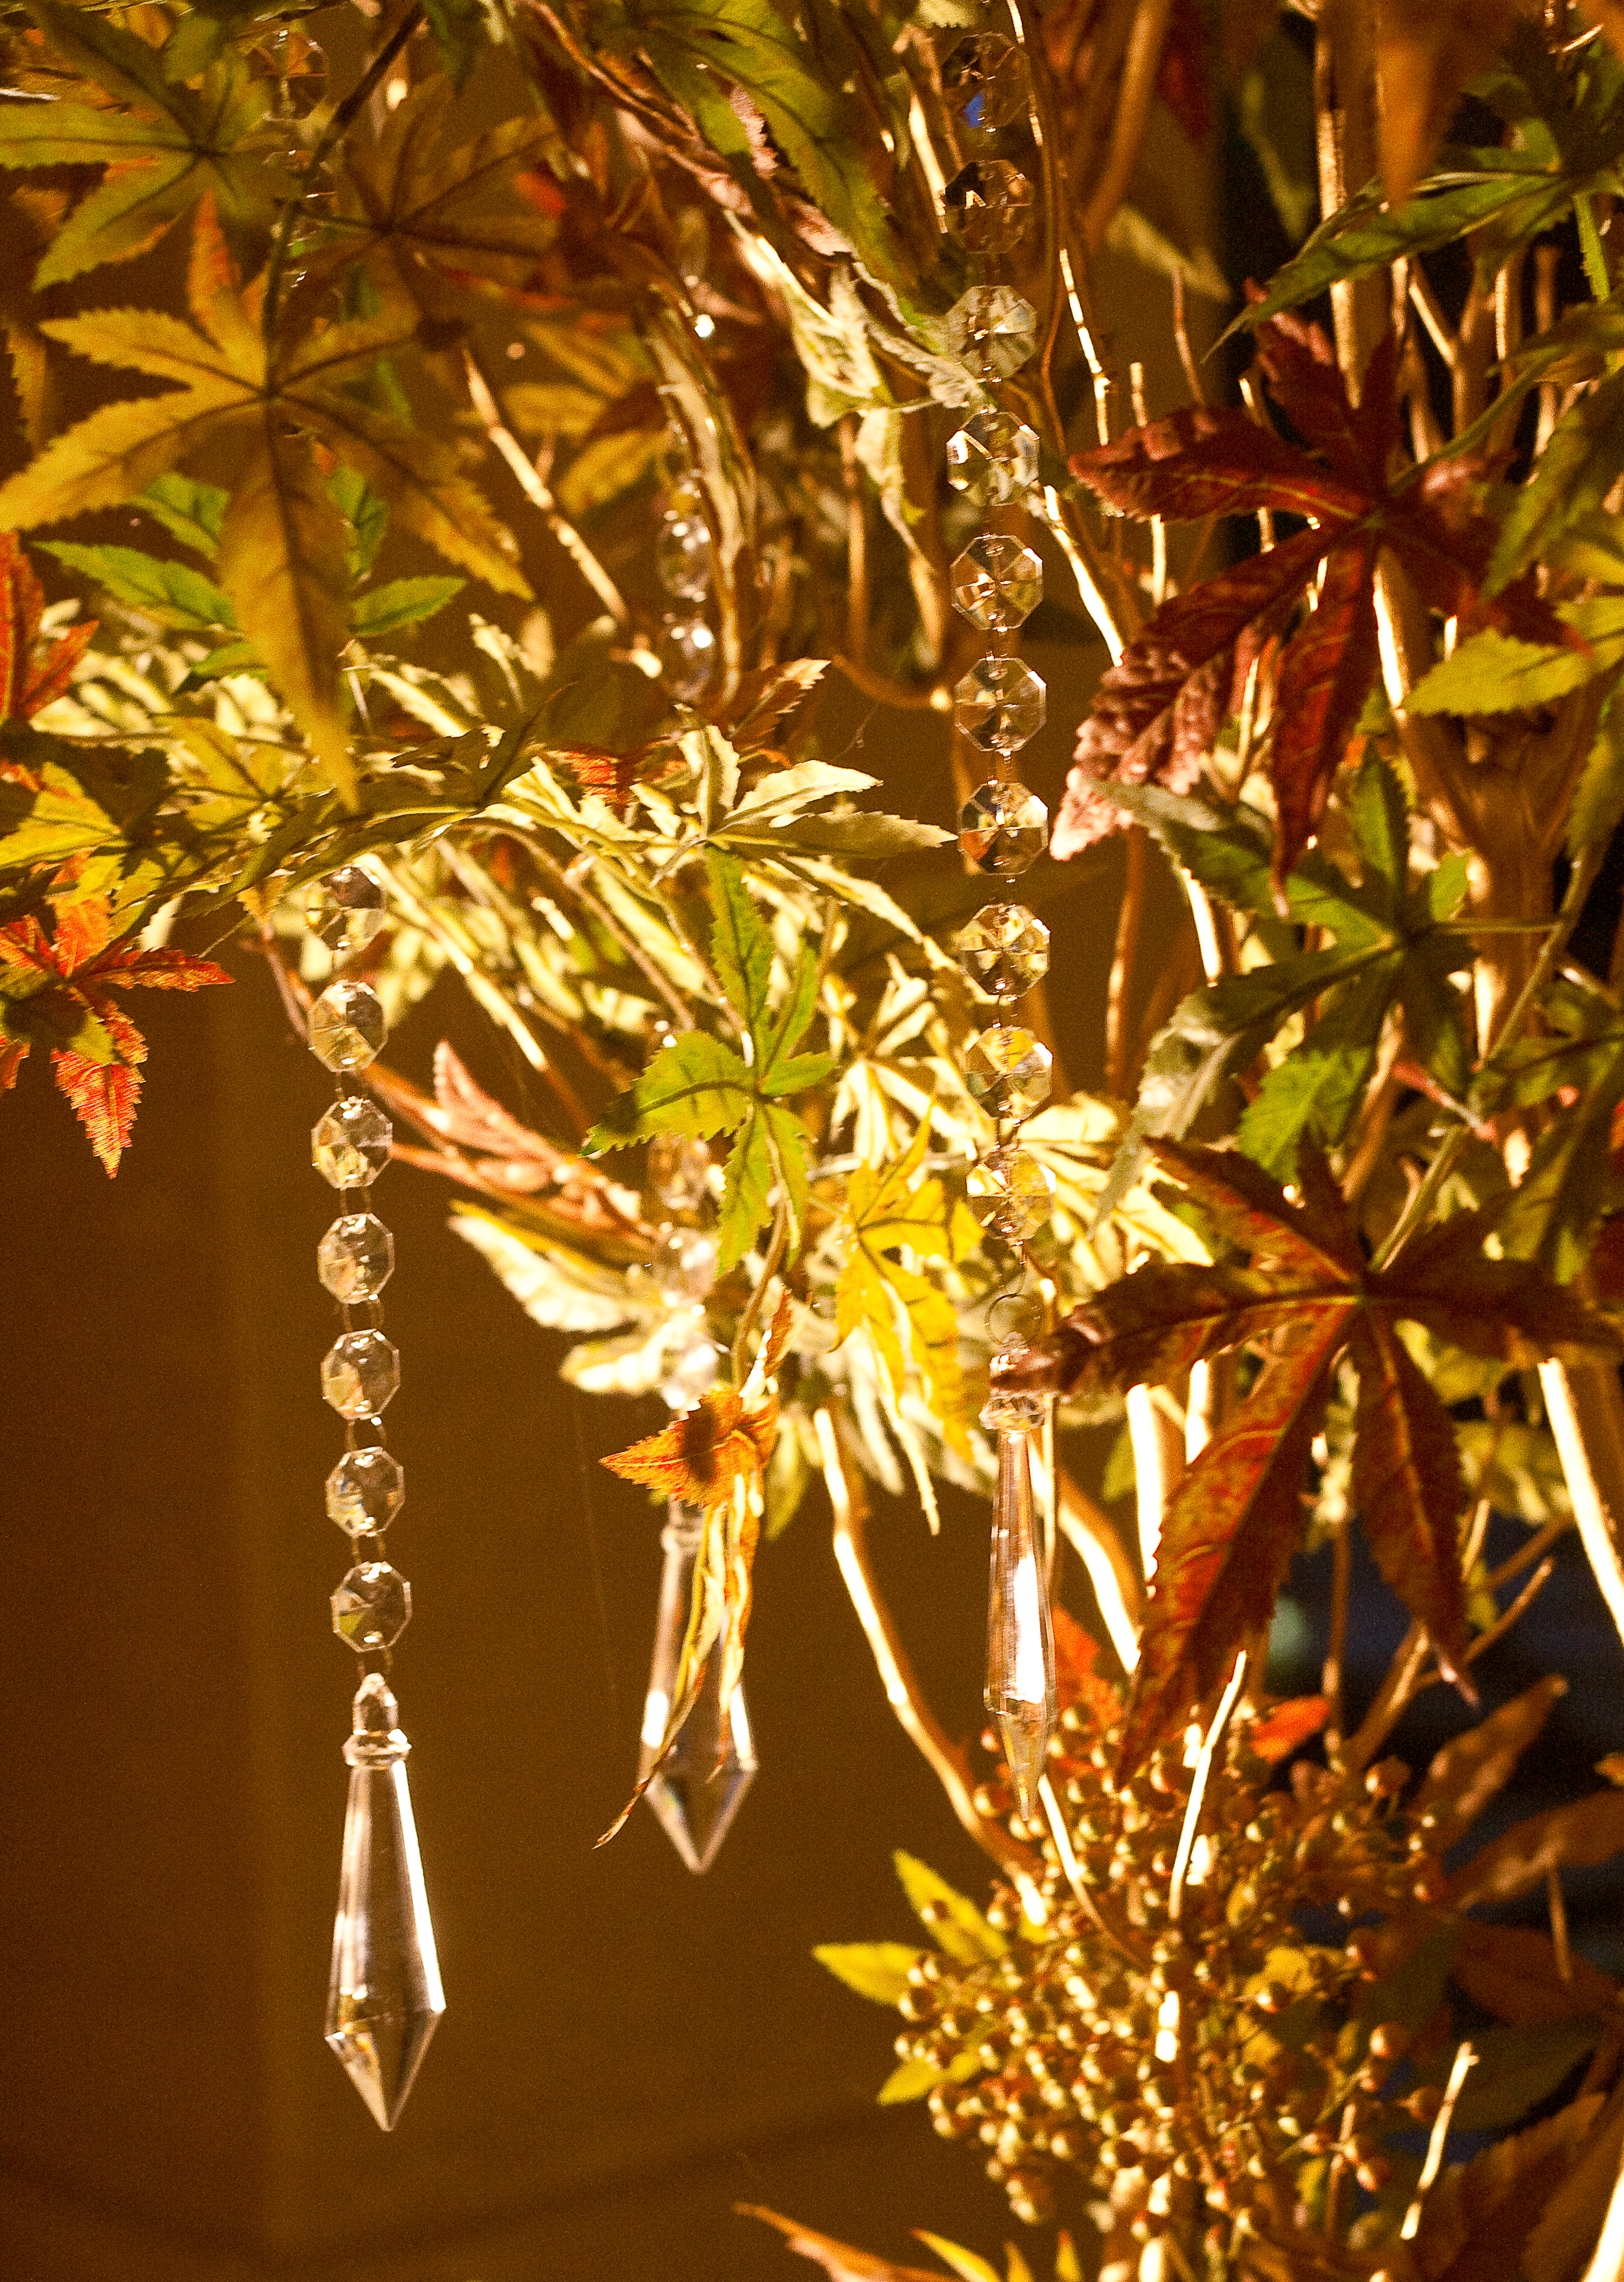 white, yellow, orange, red, purple, green, brown, gold, Fall, Centerpiece, Tree, Manzanita, Wishing, Autumn, Crystals